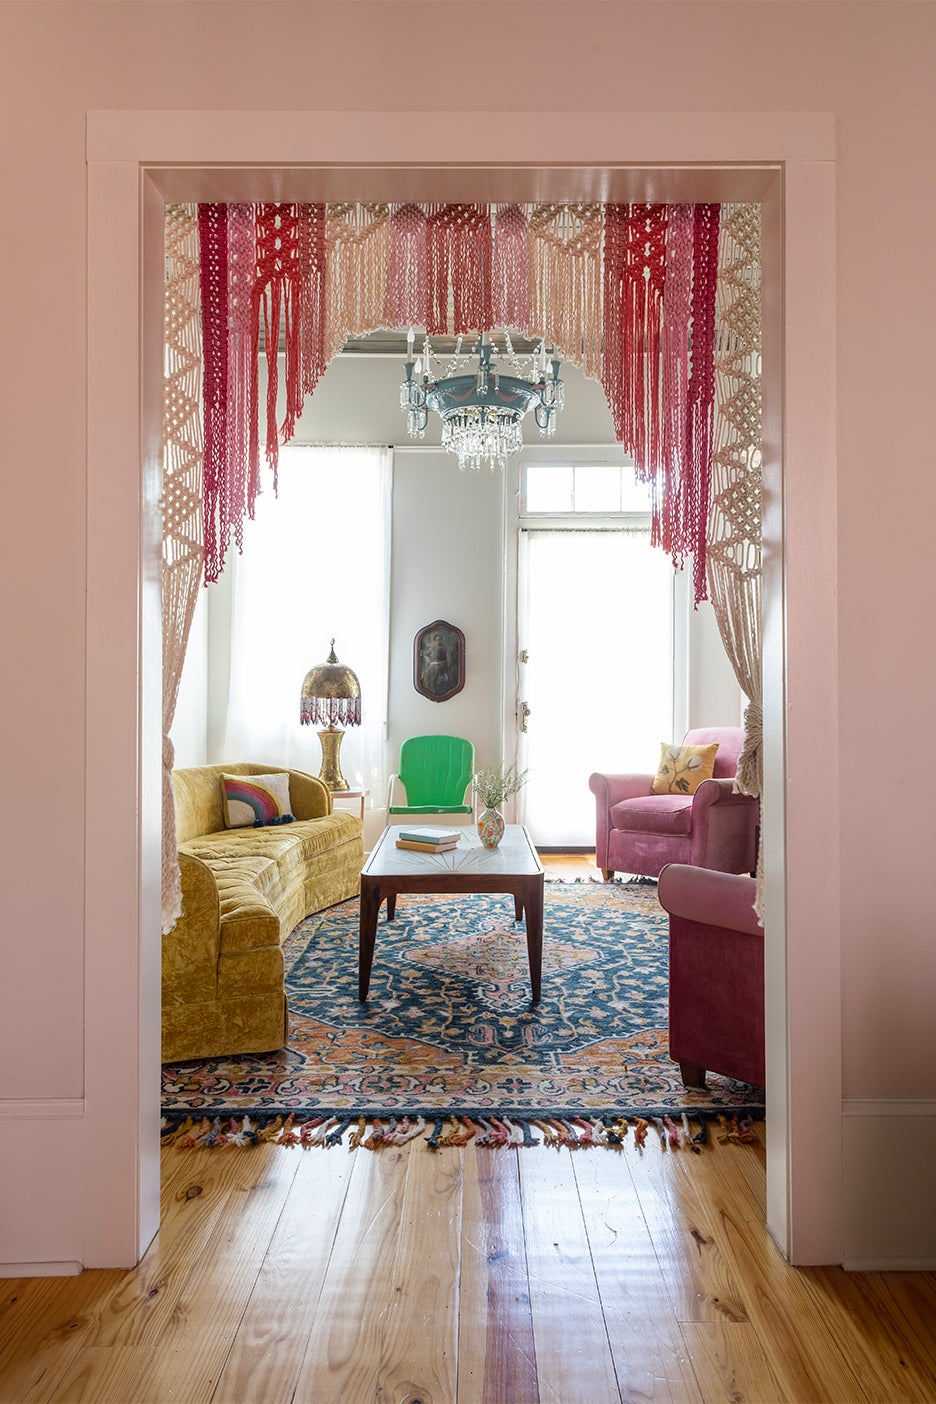 Vintage living room with macrame curtains